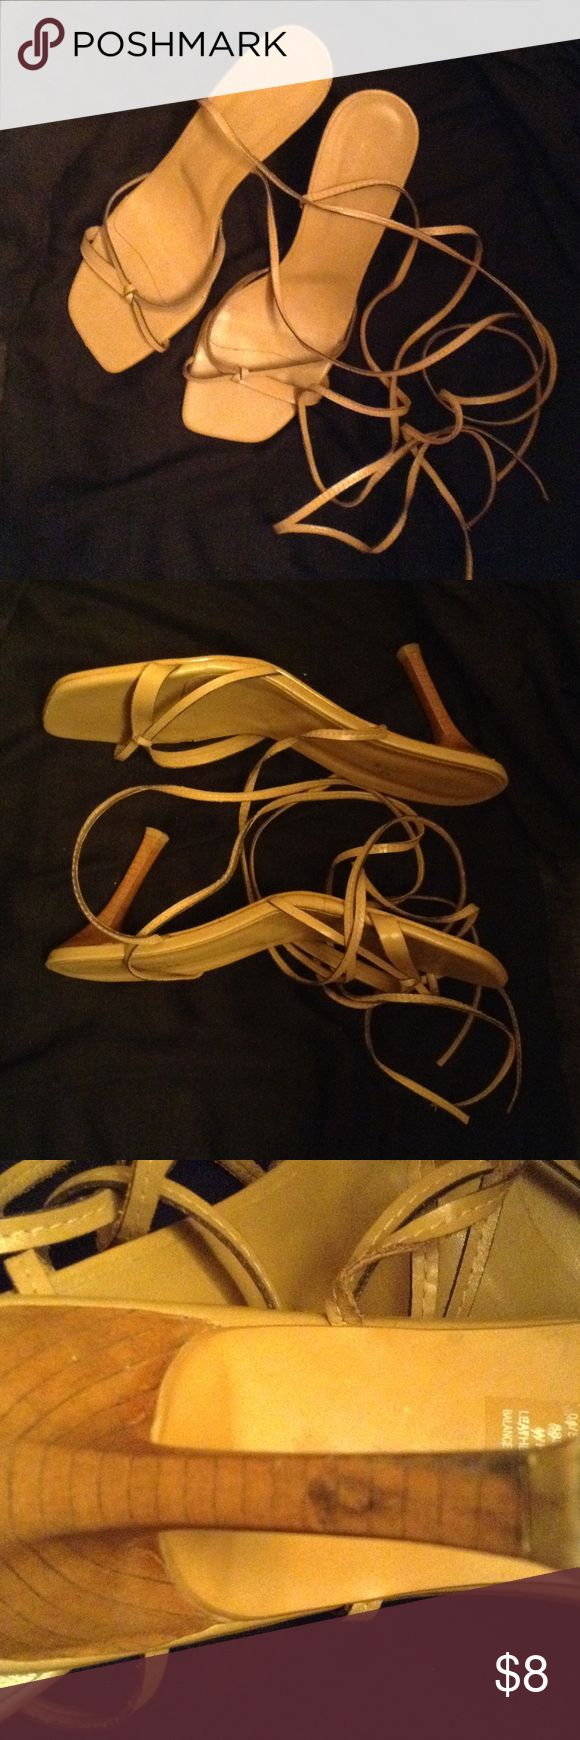 Open toe strap up heels Good condition black mark on one of the heels as shown in picture. Shoes wrap around your ankle making an attractive look. Heel is 3 1/2 inches. Bruno Valenti Shoes Heels